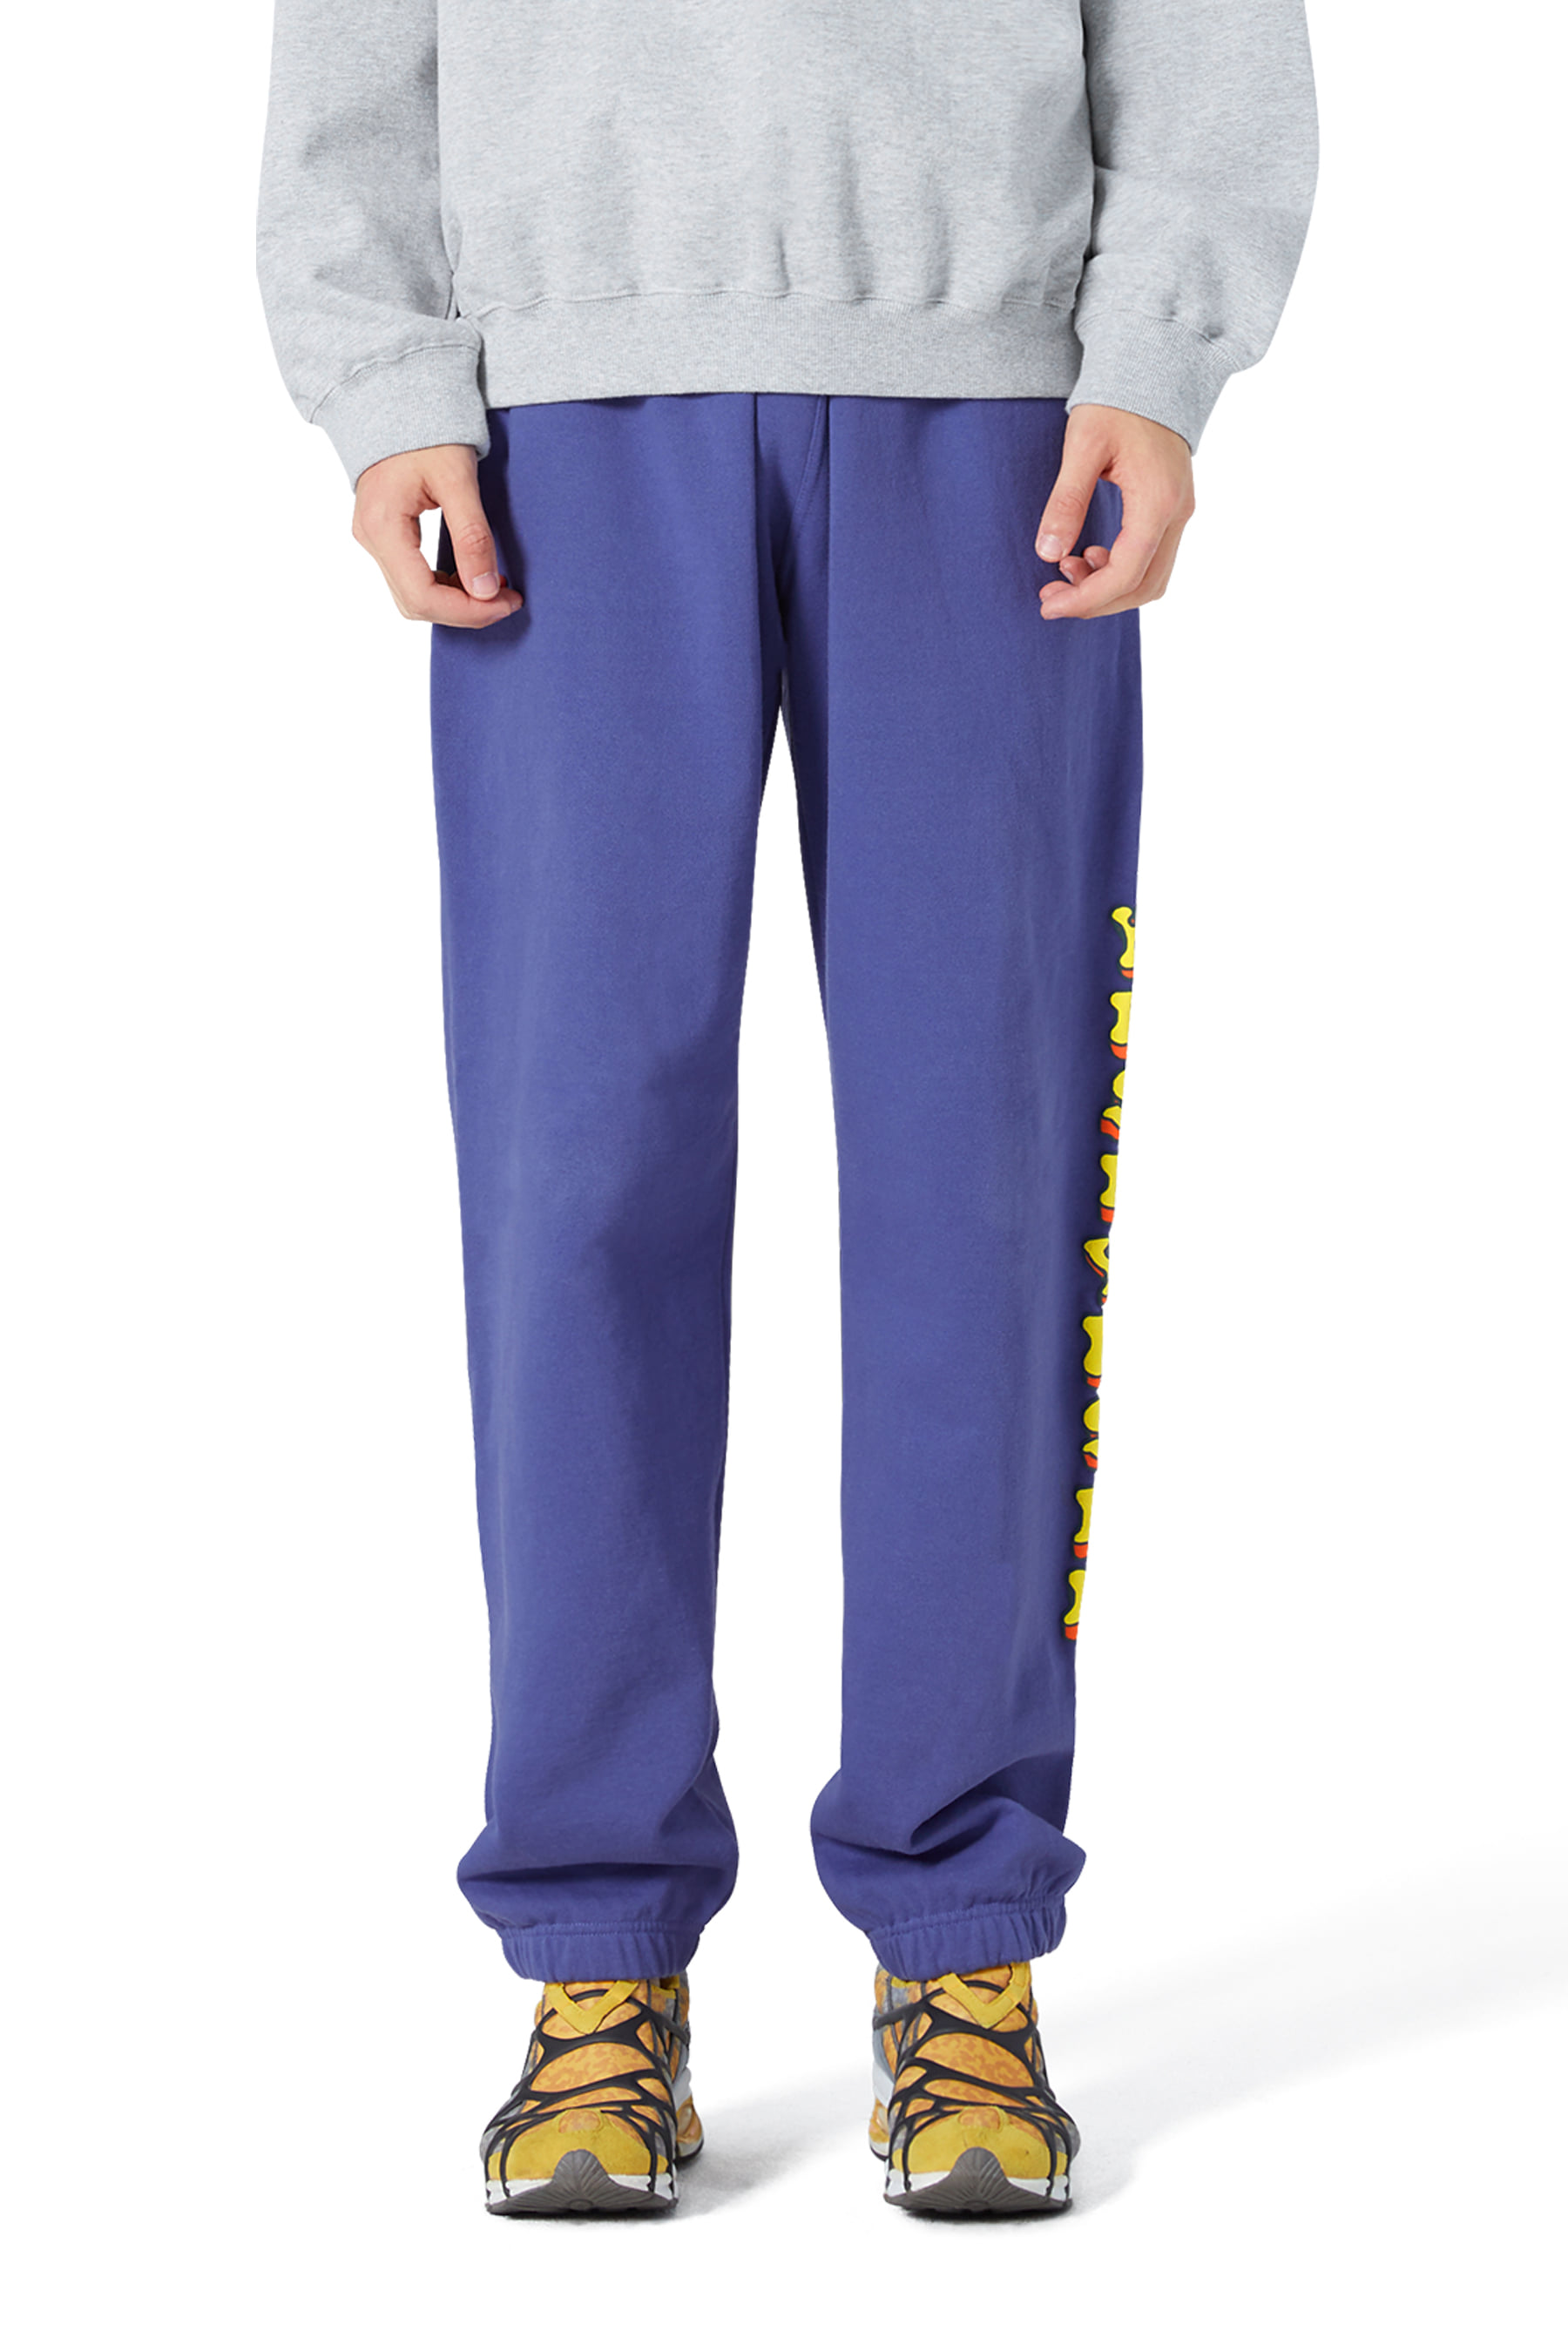 Acid Sweat Pants Violet